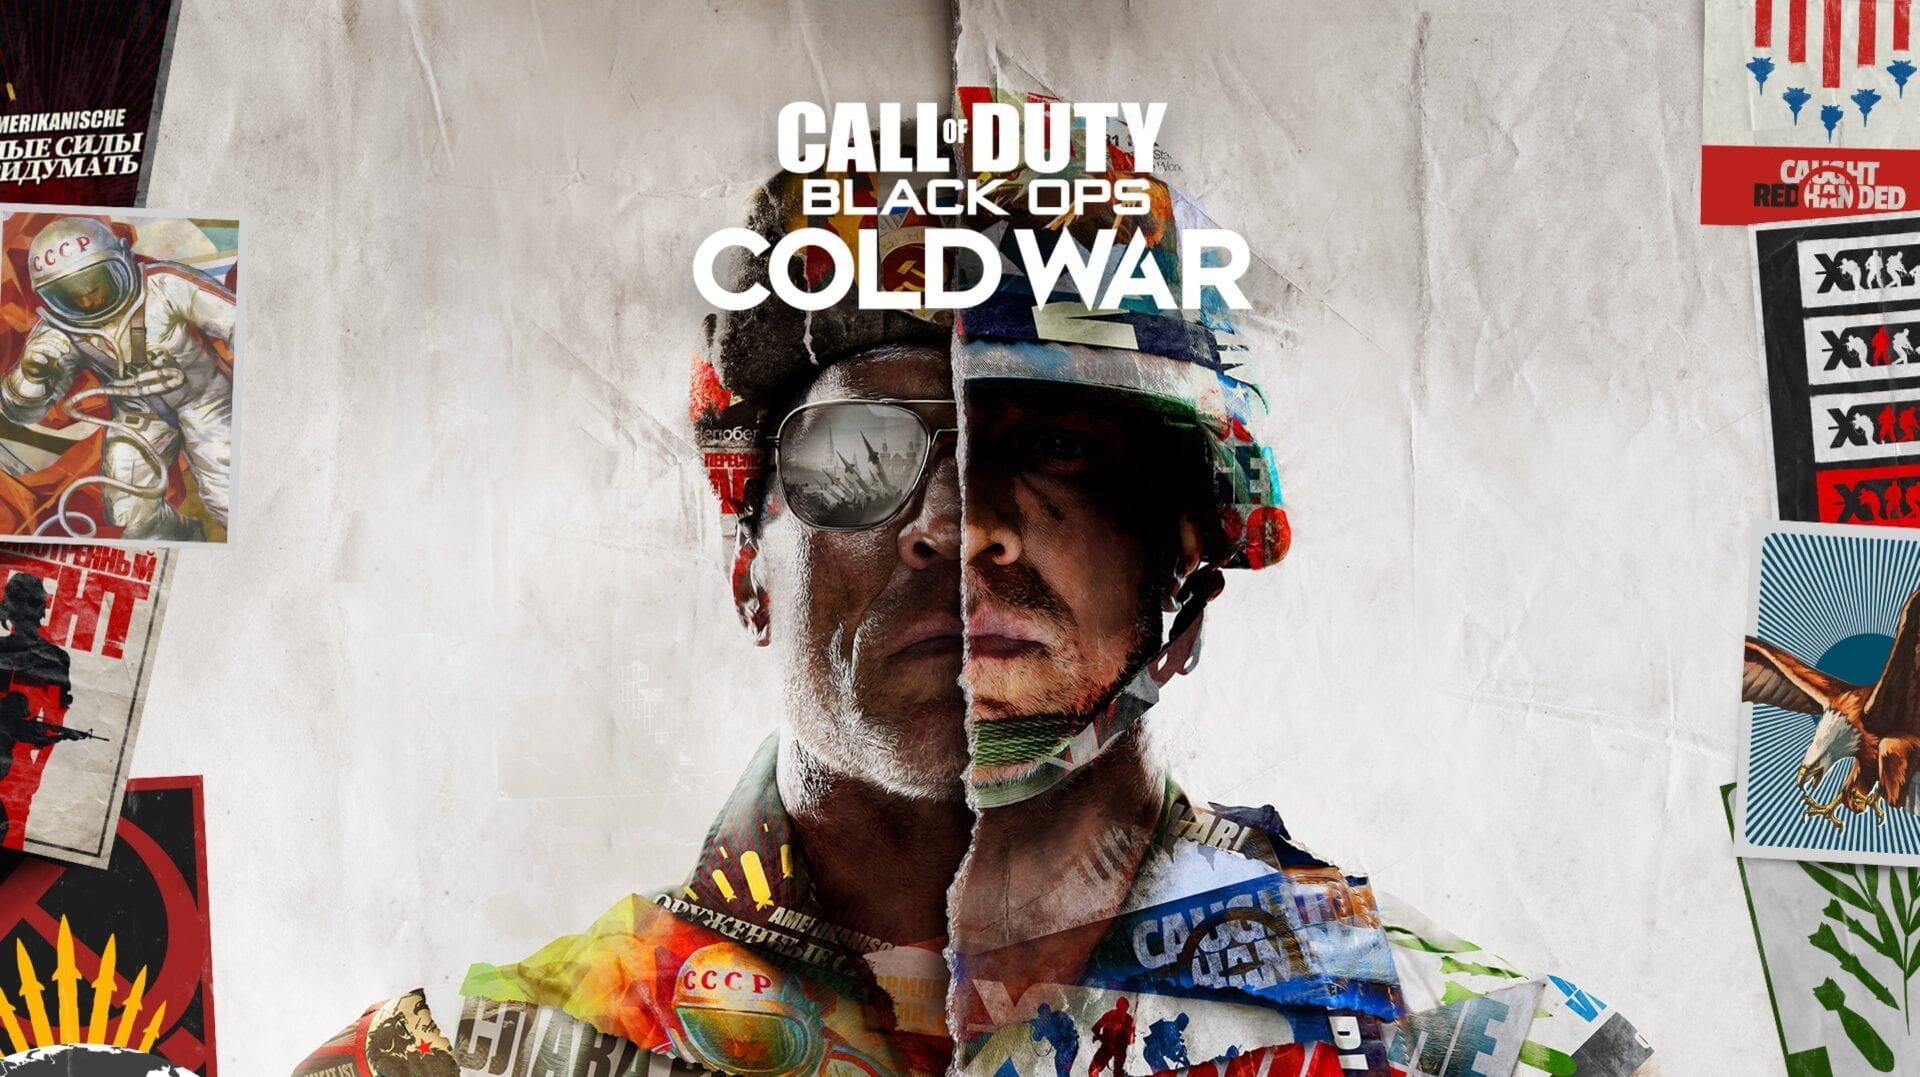 black ops cold war, invite friends